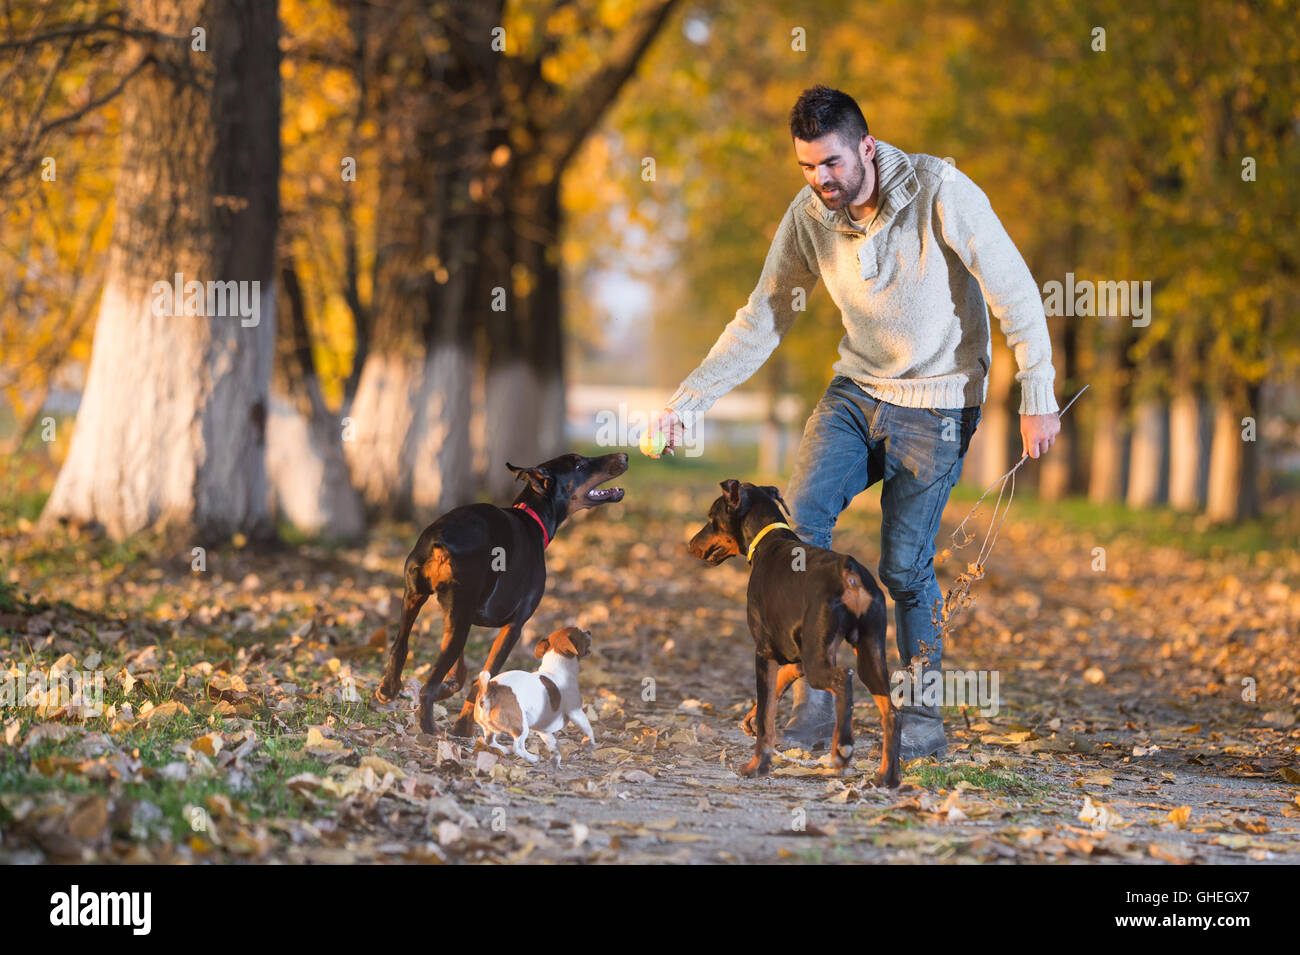 Doberman Pinscher with owner in training - Stock Image